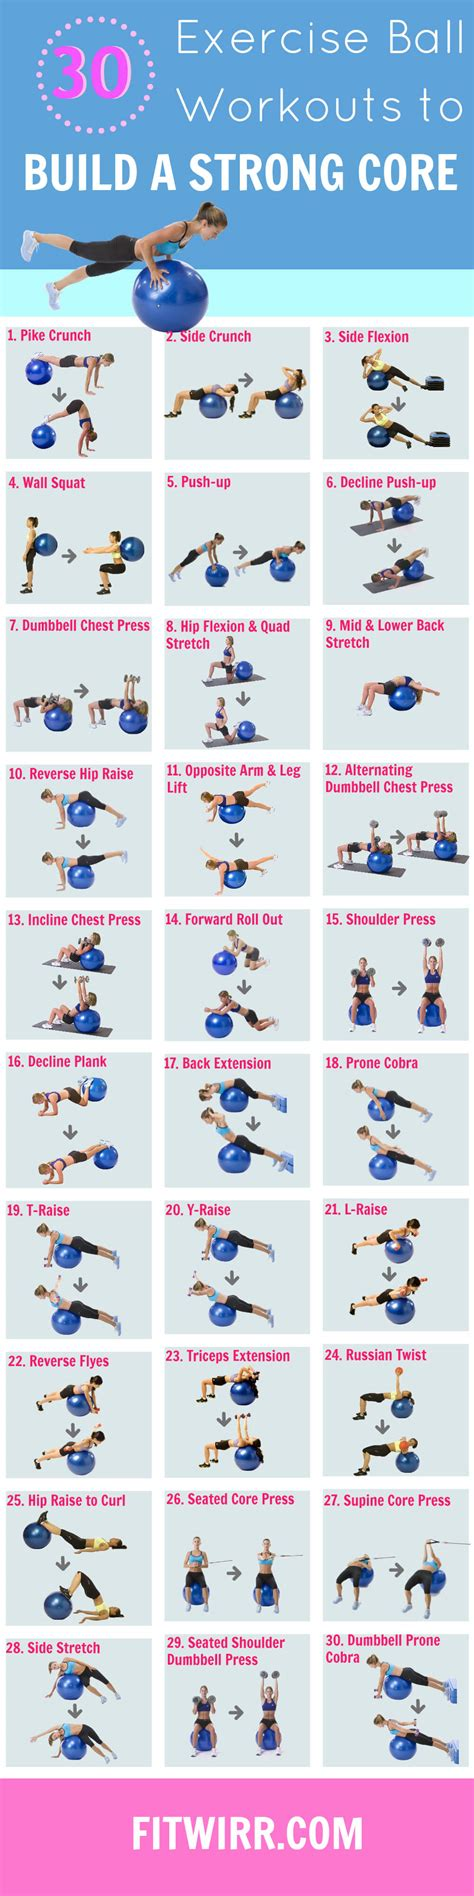 printable exercise ball workouts for beginners 30 printable ball exercises to strengthen your core